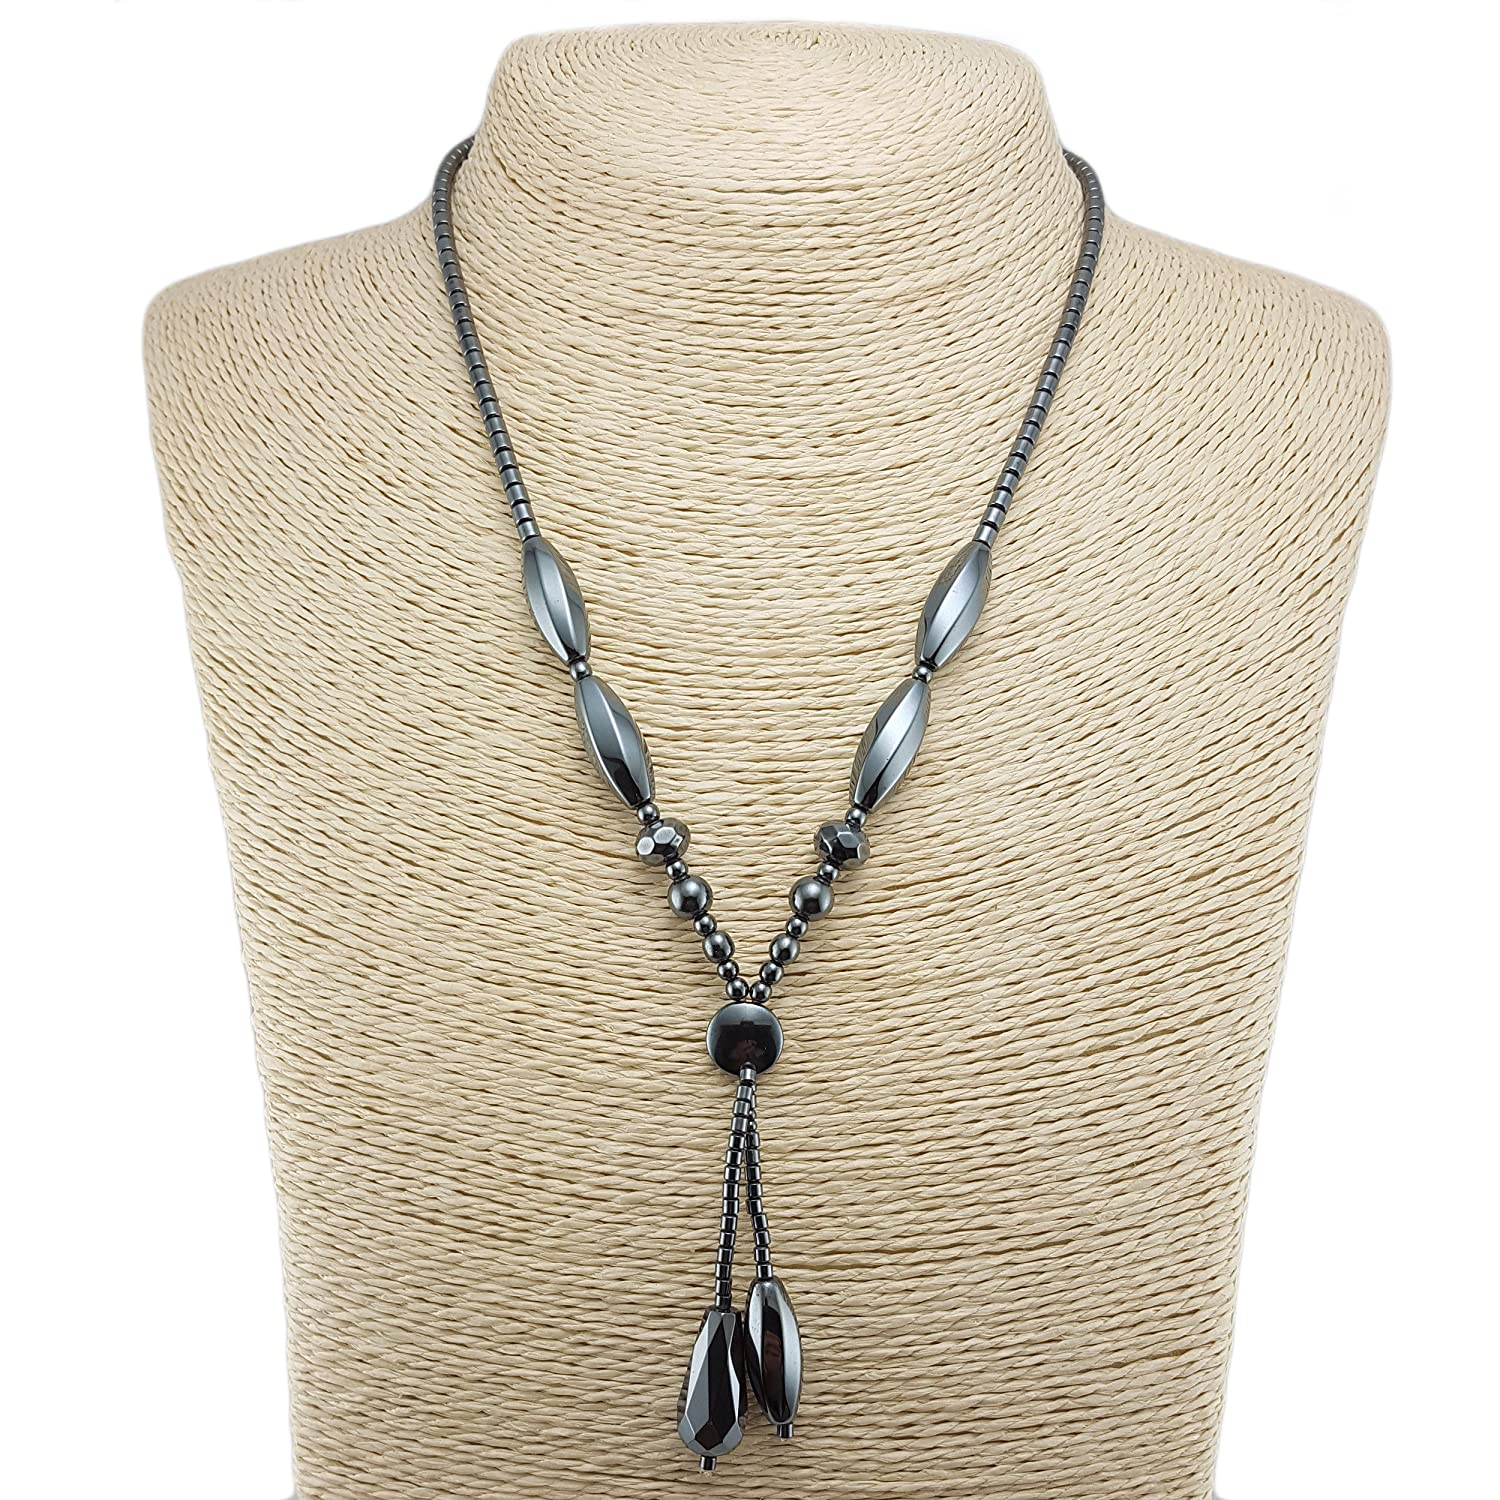 BlueRica Double Strand Drop Hematite Necklace with Design Beads B01LXE2IC4_US